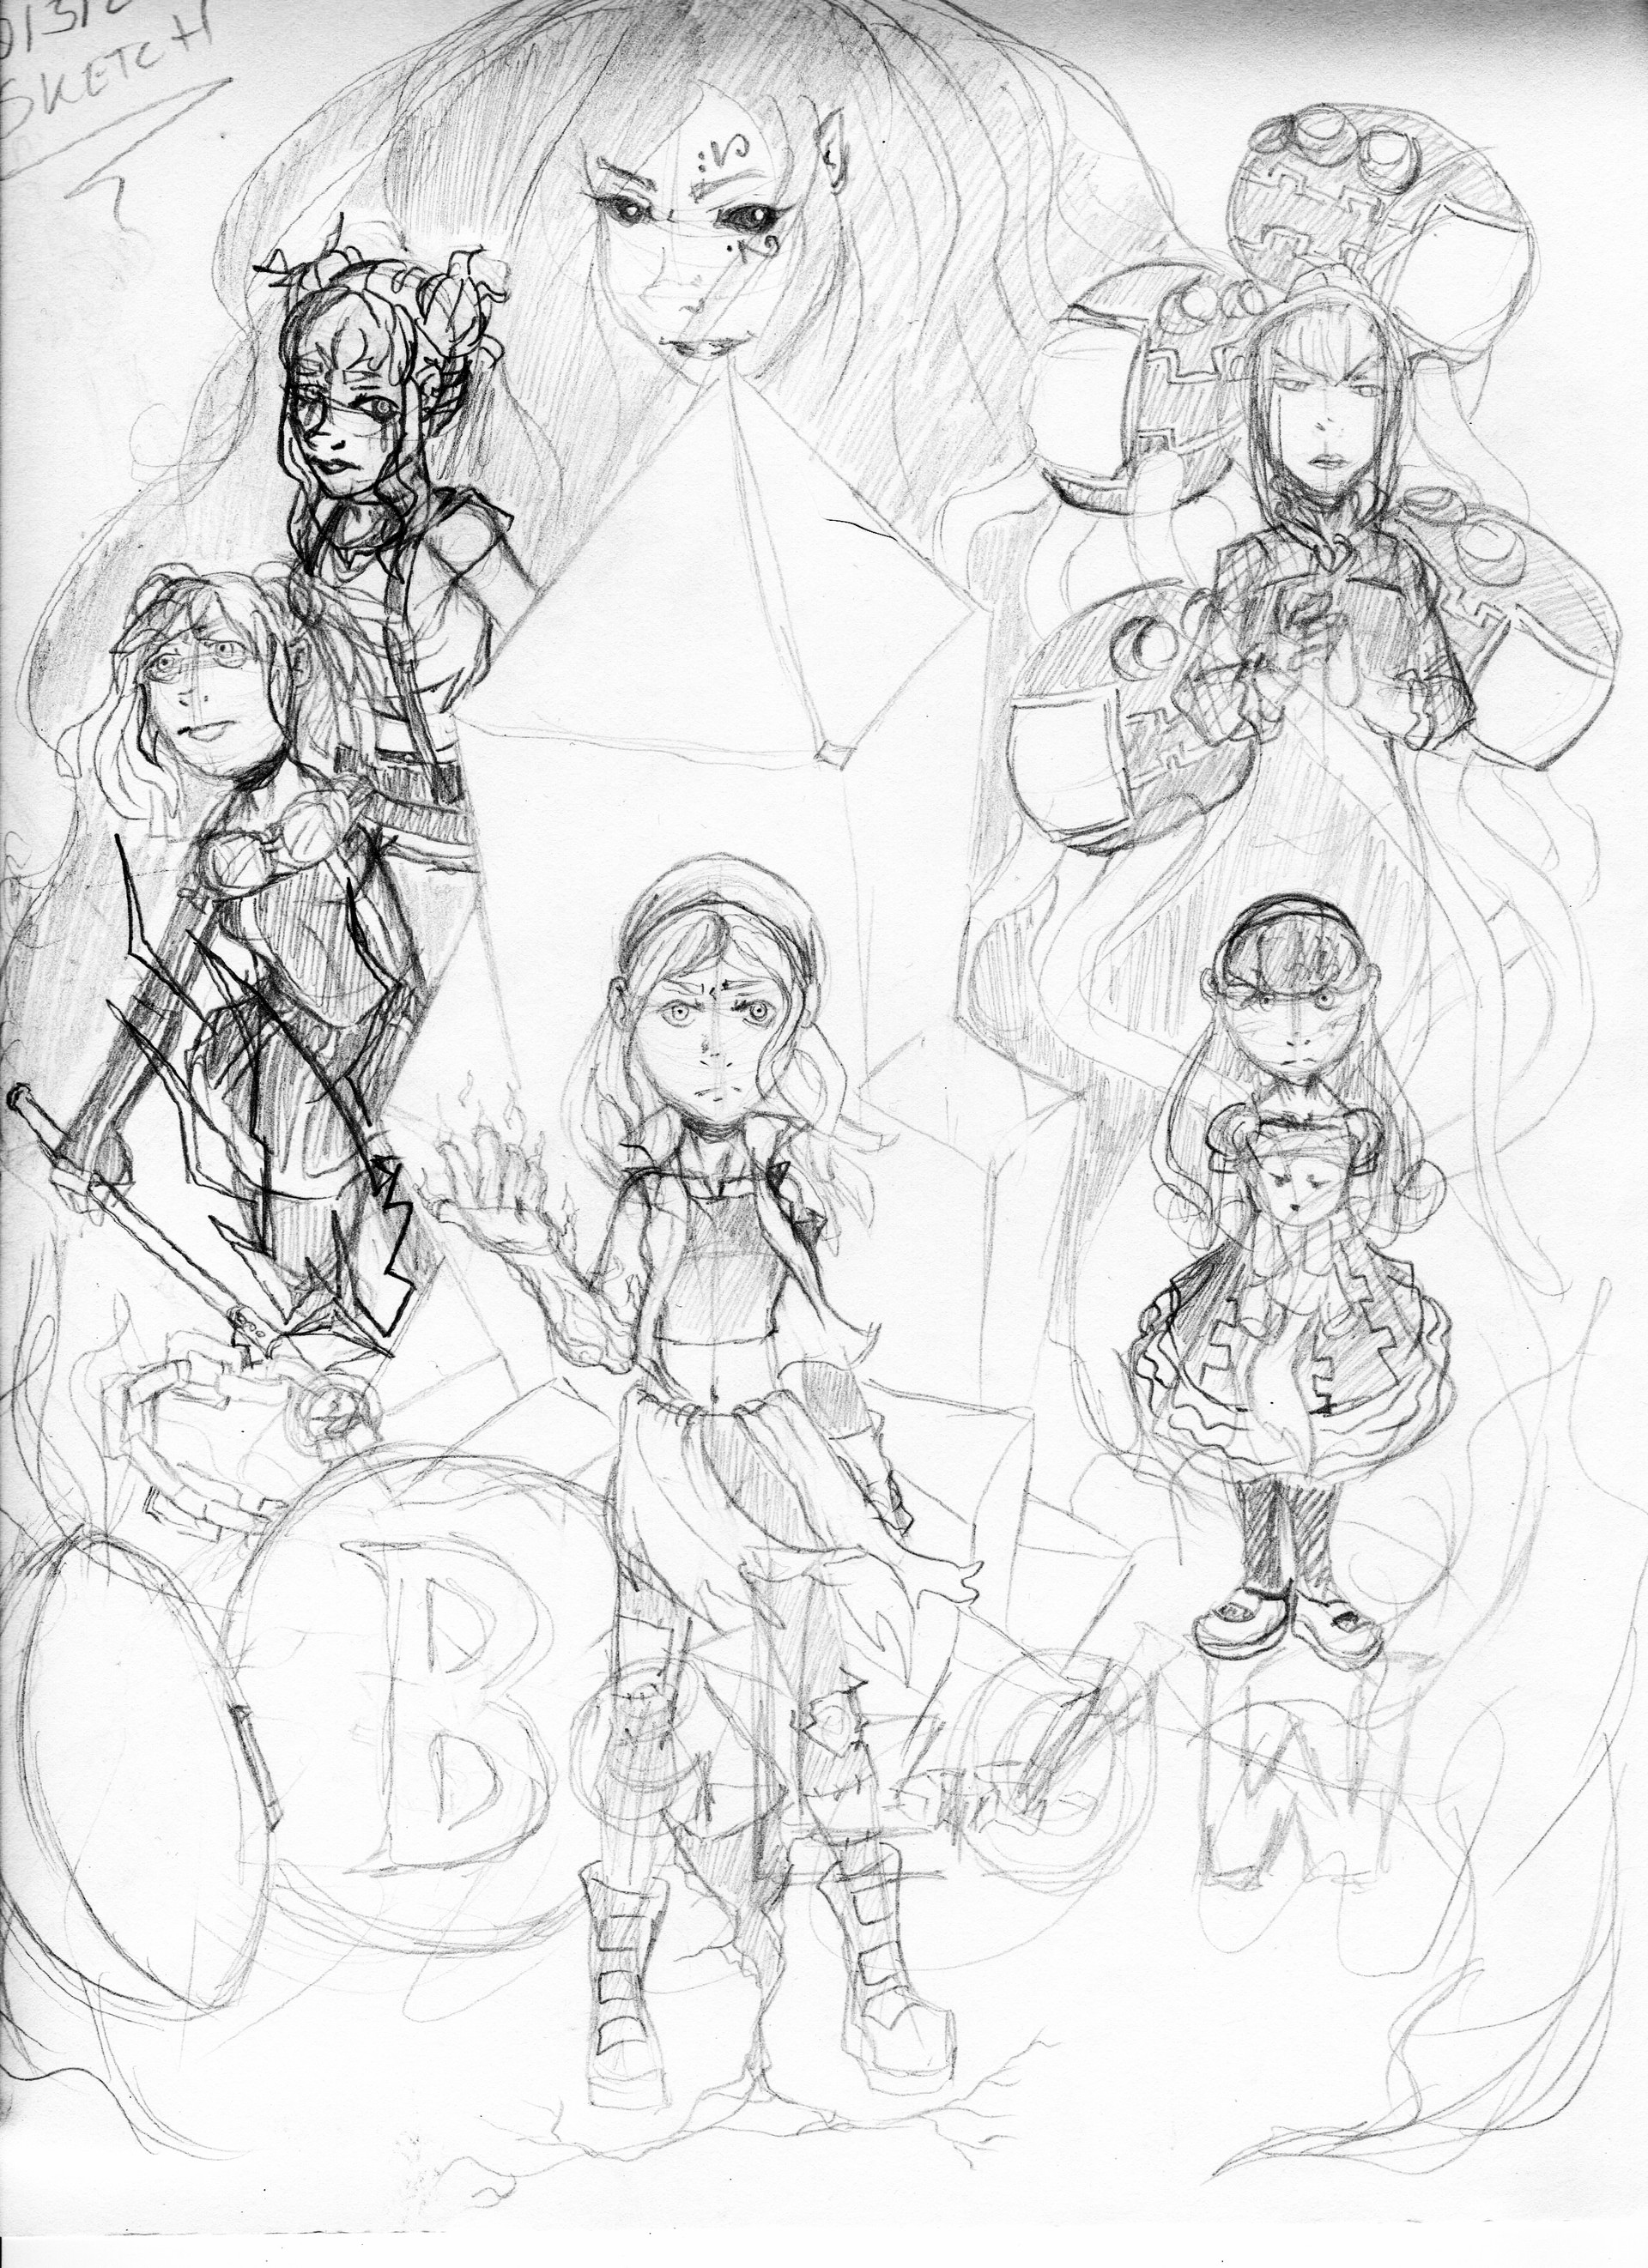 Detonya kan below poster sketch